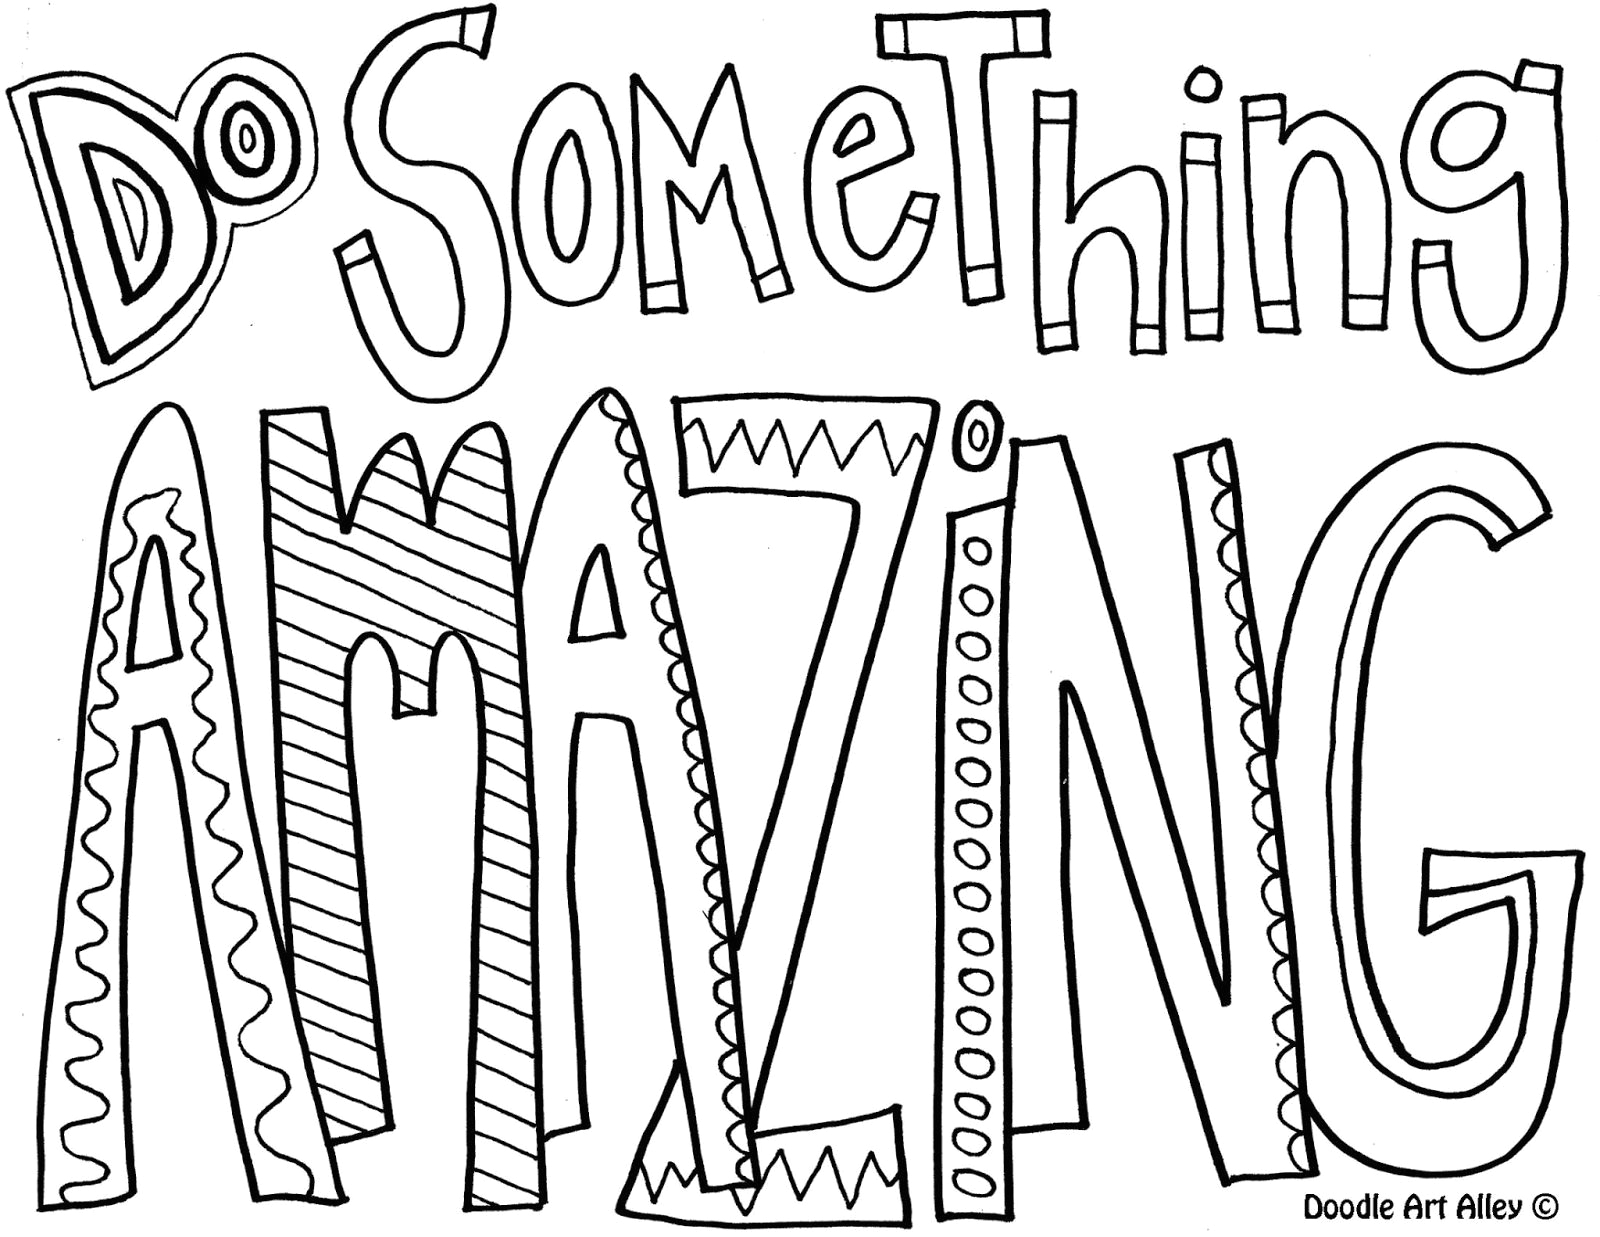 Printable Coloring Pages for Middle School Students Free Printable Coloring Pages for Middle School Students